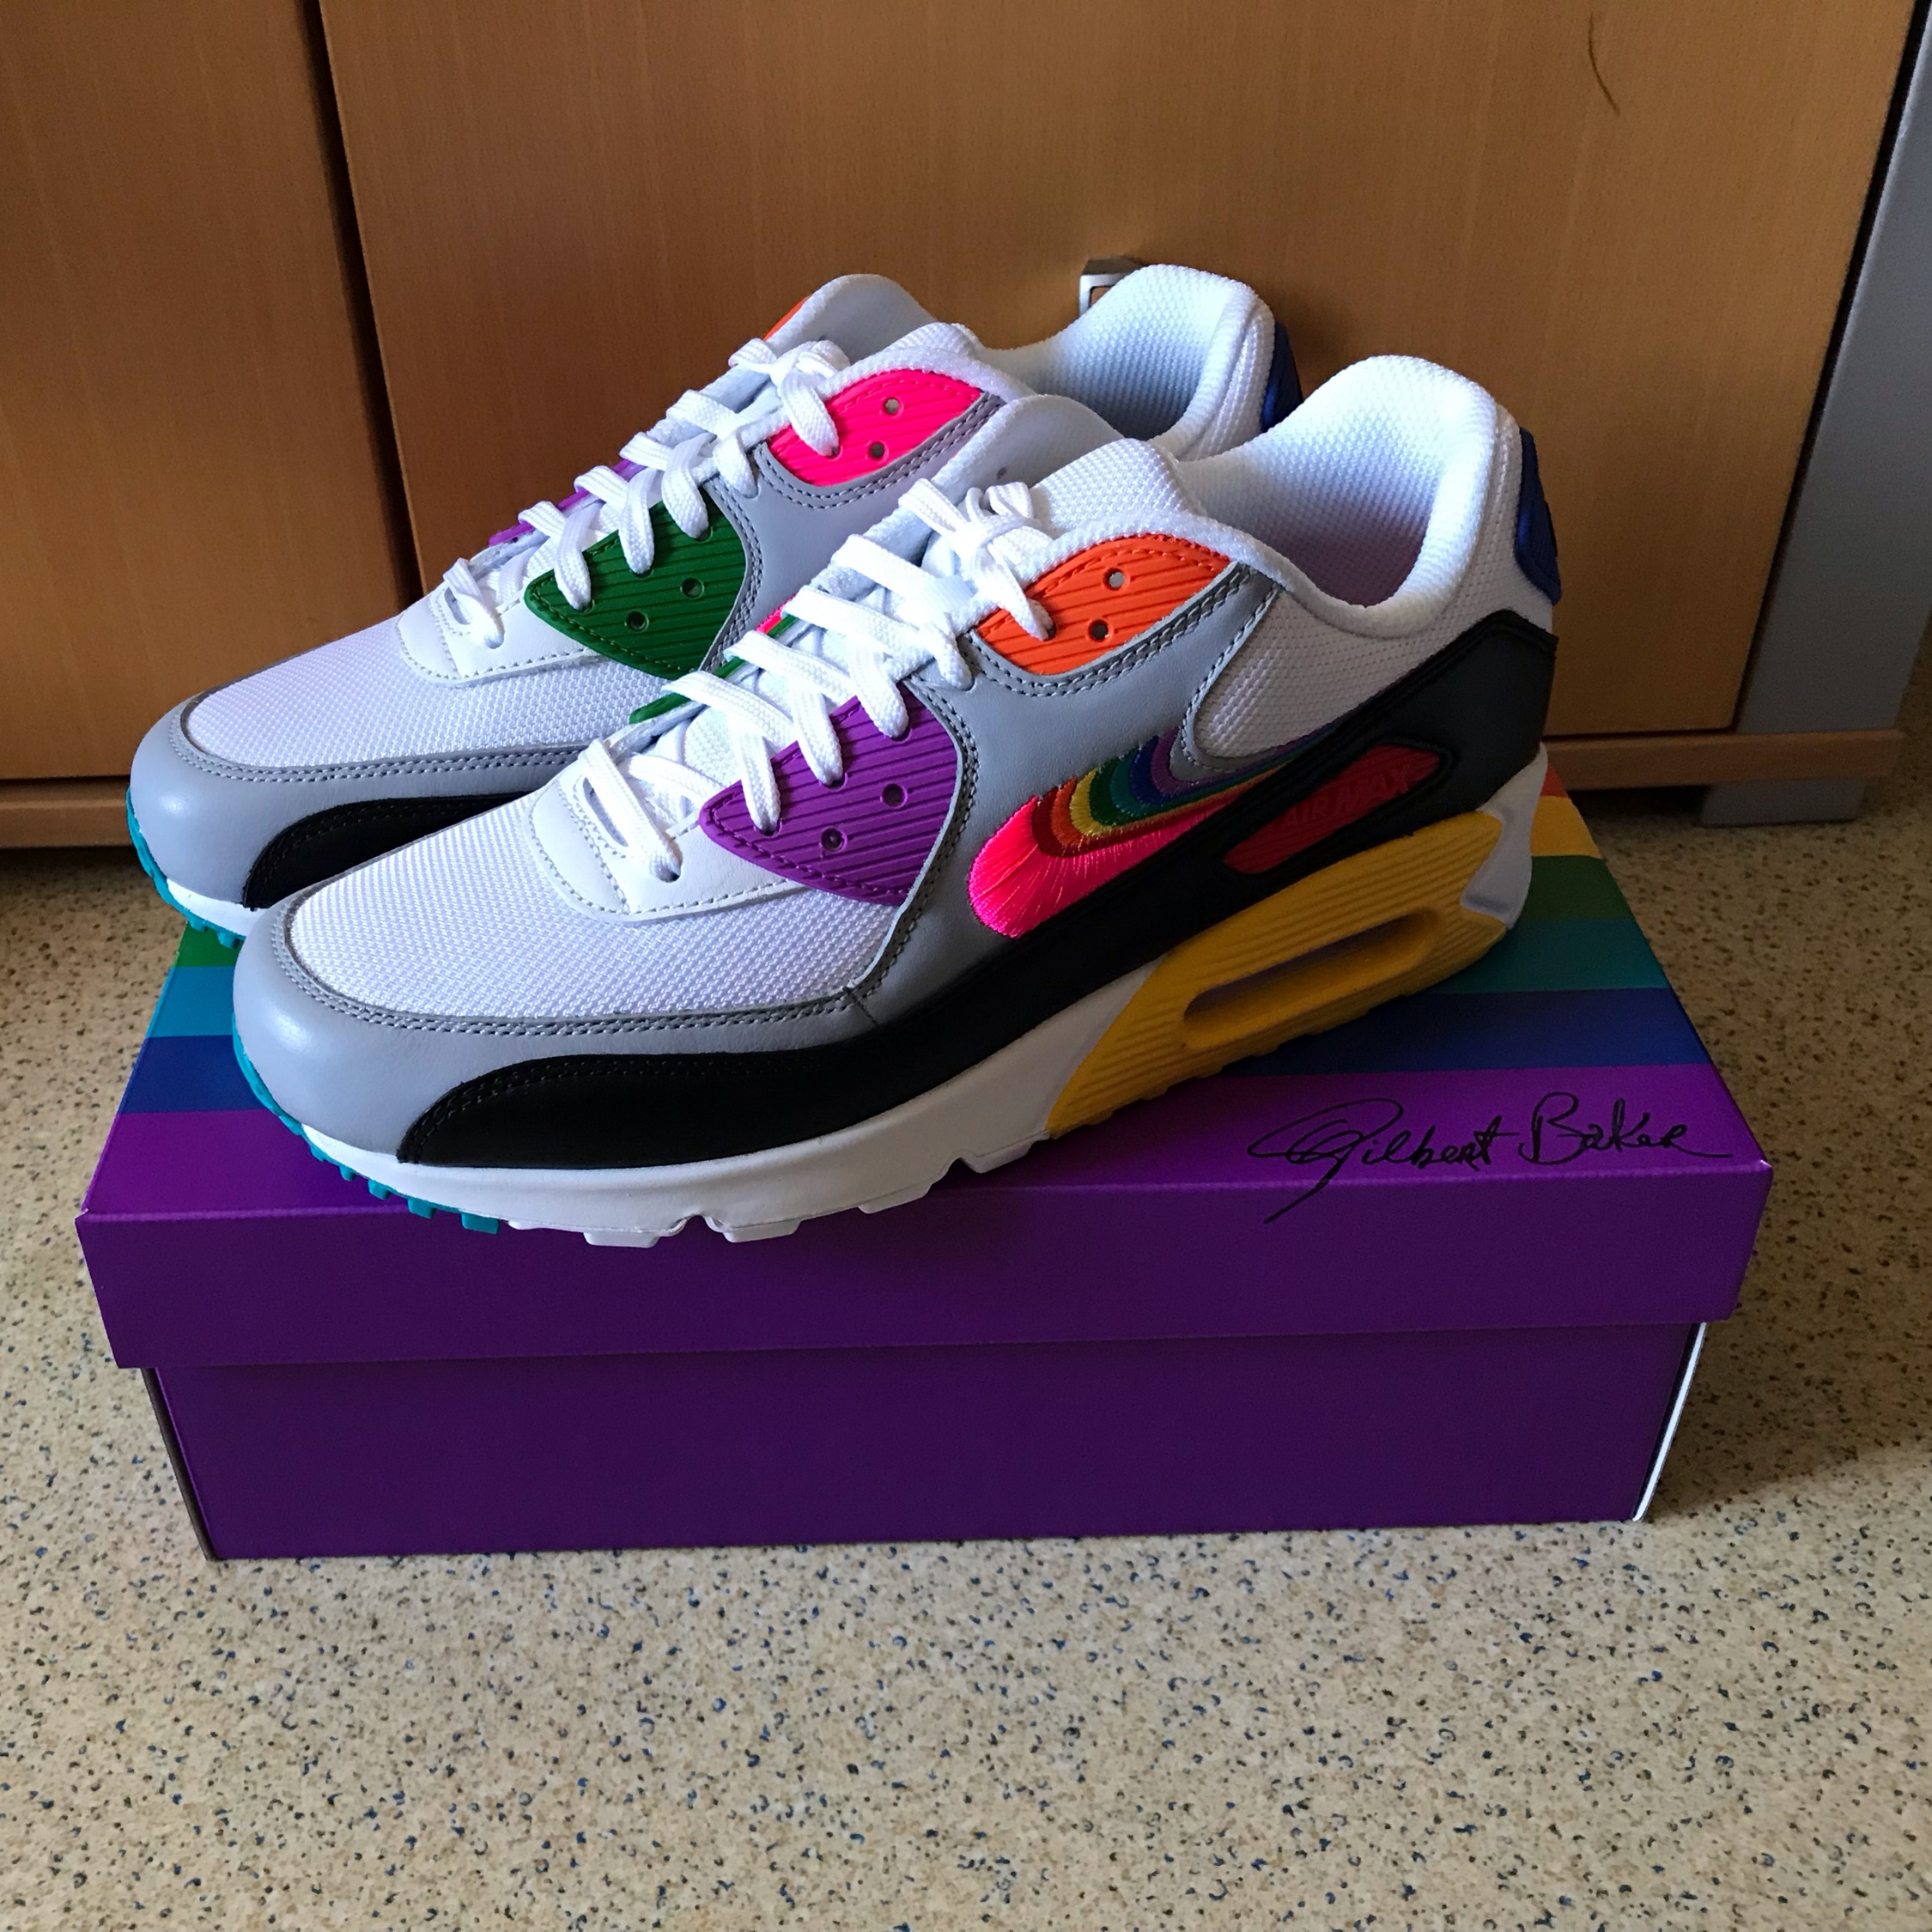 NIKE AIR MAX 90 LEATHER BLUE VOID voor 15,00